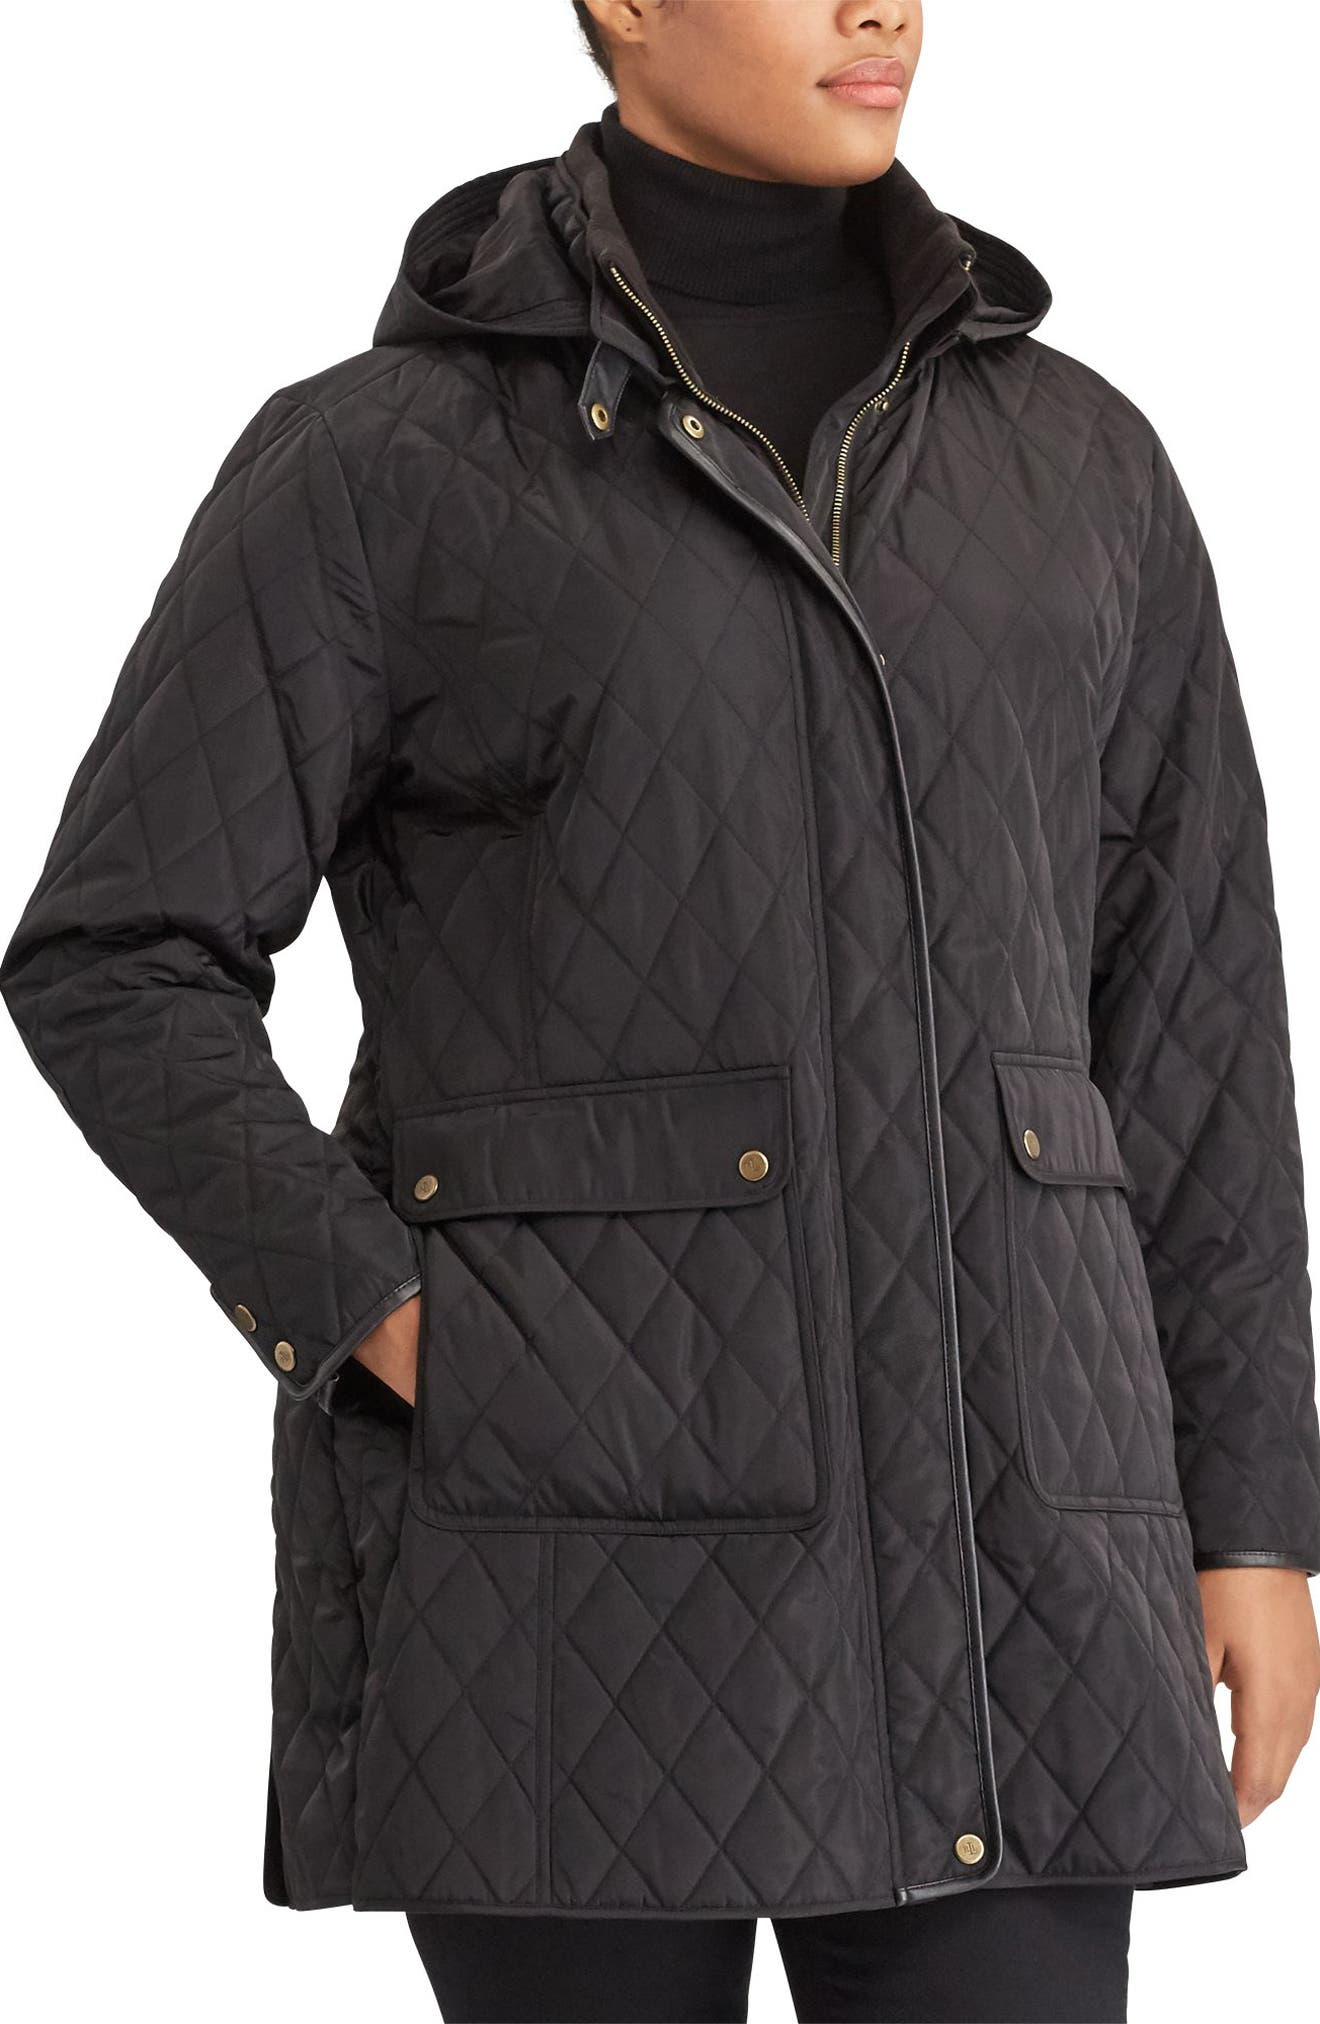 Diamond Quilted Jacket with Faux Leather Trim,                             Main thumbnail 1, color,                             001